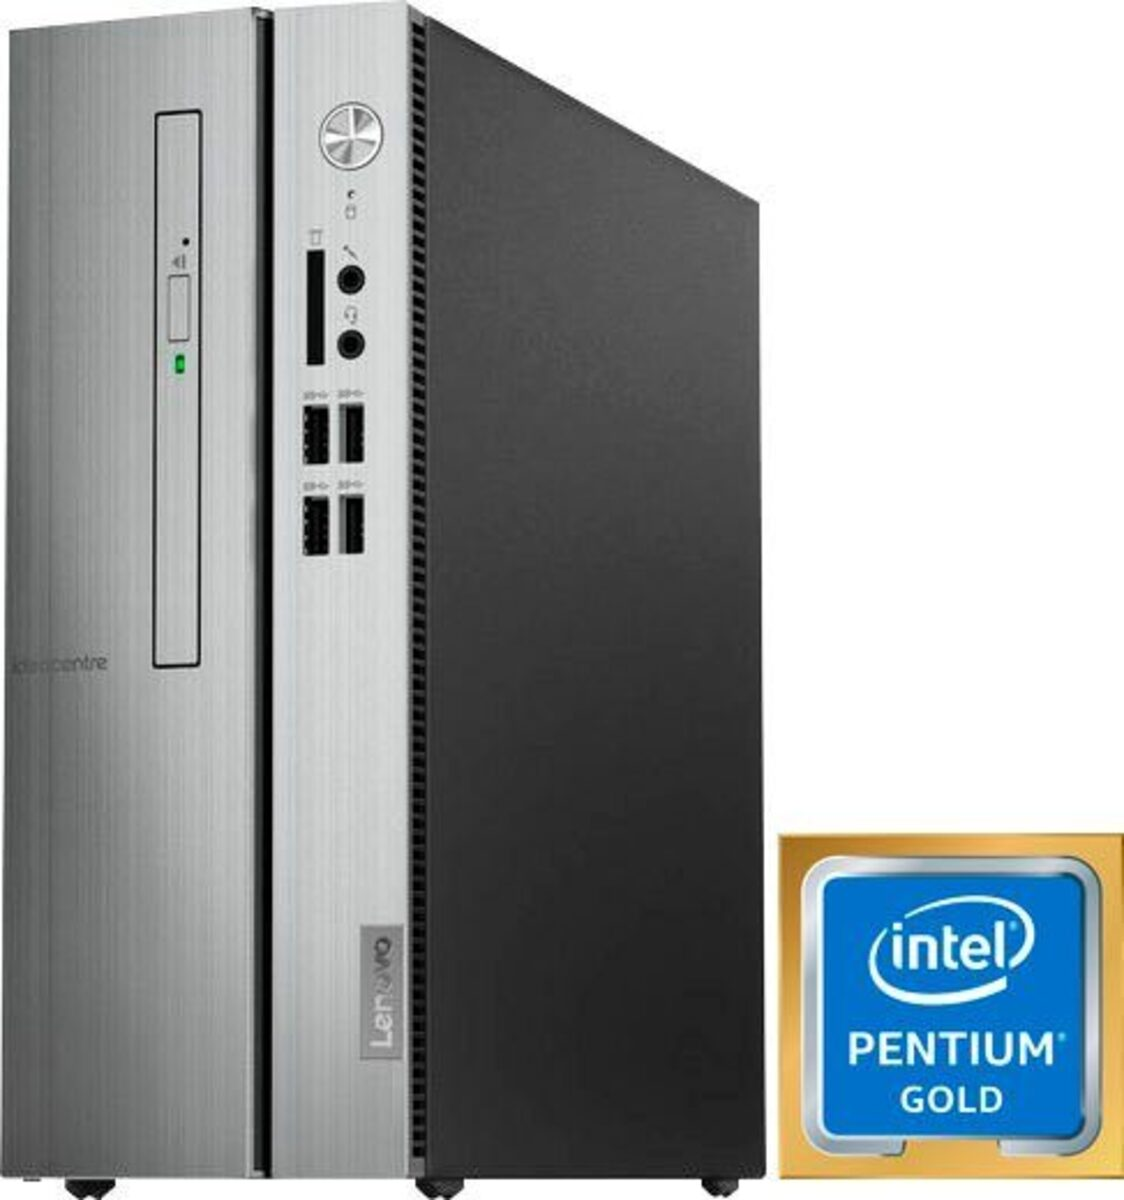 Bild 1 von Lenovo ideacentre 510s-07ICK PC (Intel® Pentium Gold, UHD Graphics 610, 8 GB RAM, 256 GB SSD, inkl. Office-Anwendersoftware Microsoft 365 Single im Wert von 69 Euro)